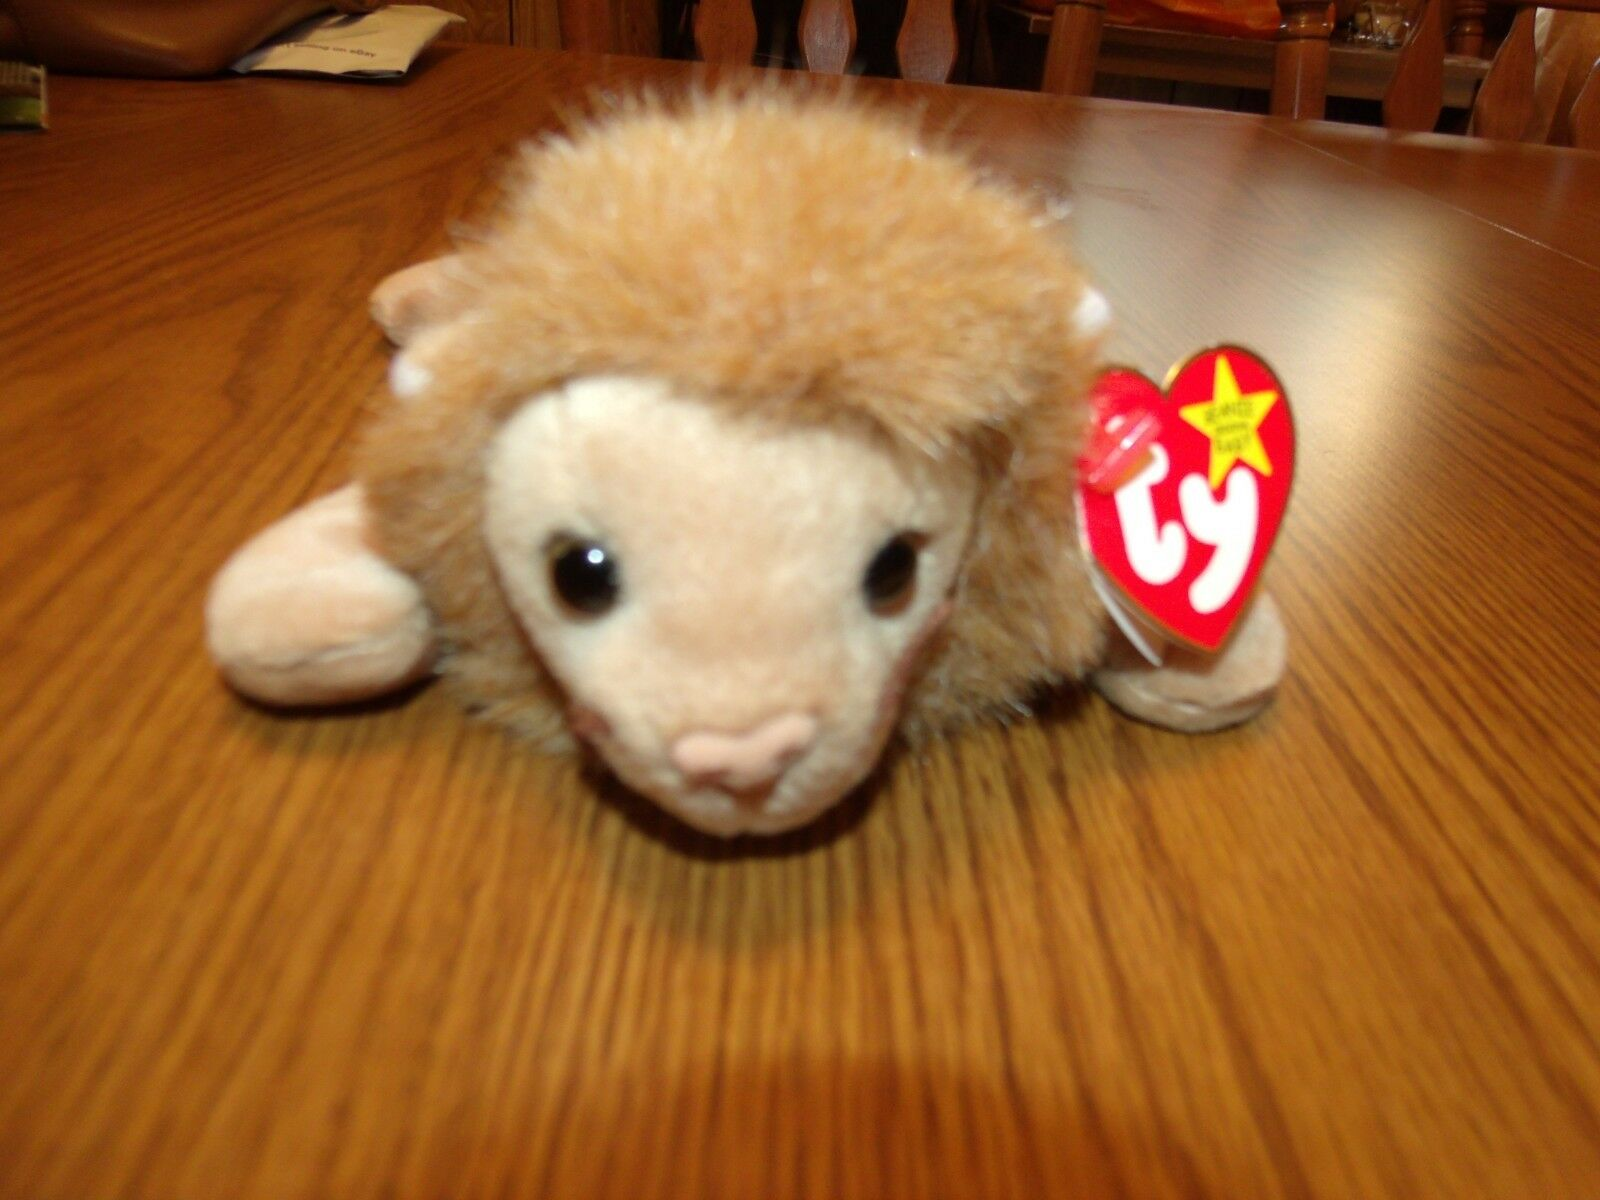 RETIRED TY BEANIE BABY ROARY DOB 2 20 1996 WITH TAG ERRORS & FACTORY FLAWS